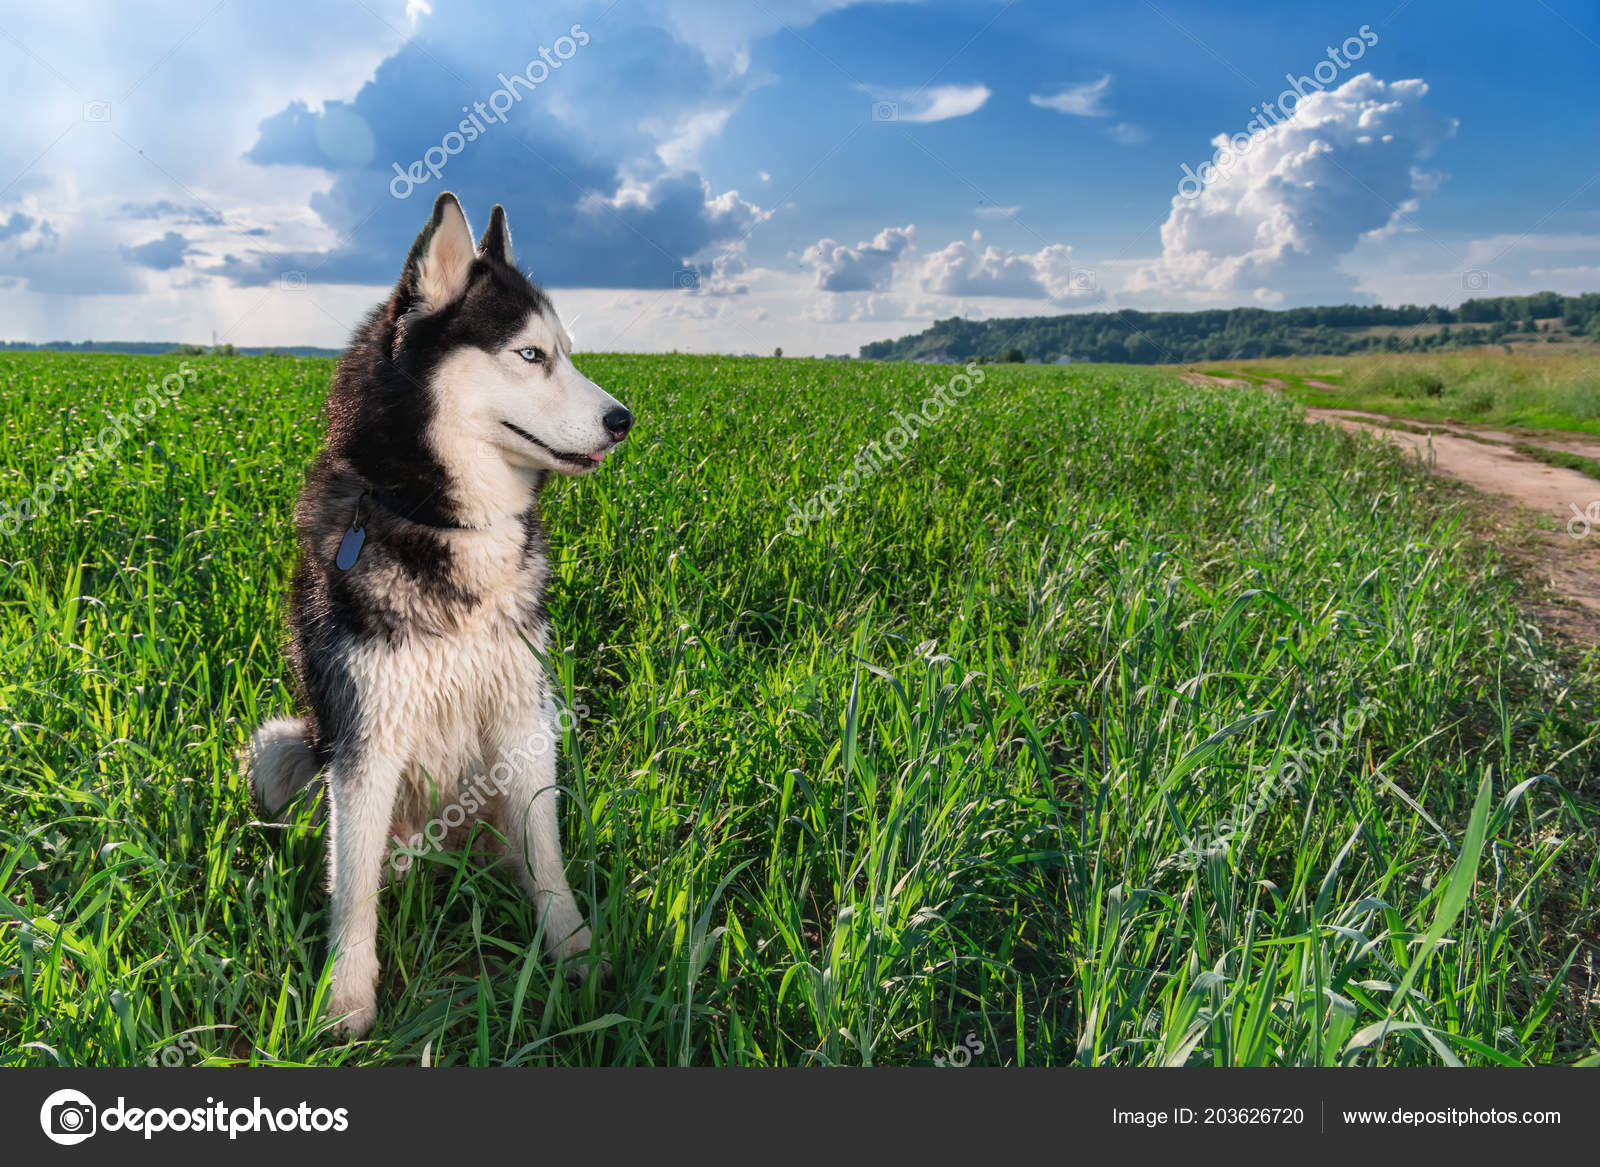 Blue Eyed Siberian Husky Black And White Color Sitting On Bright